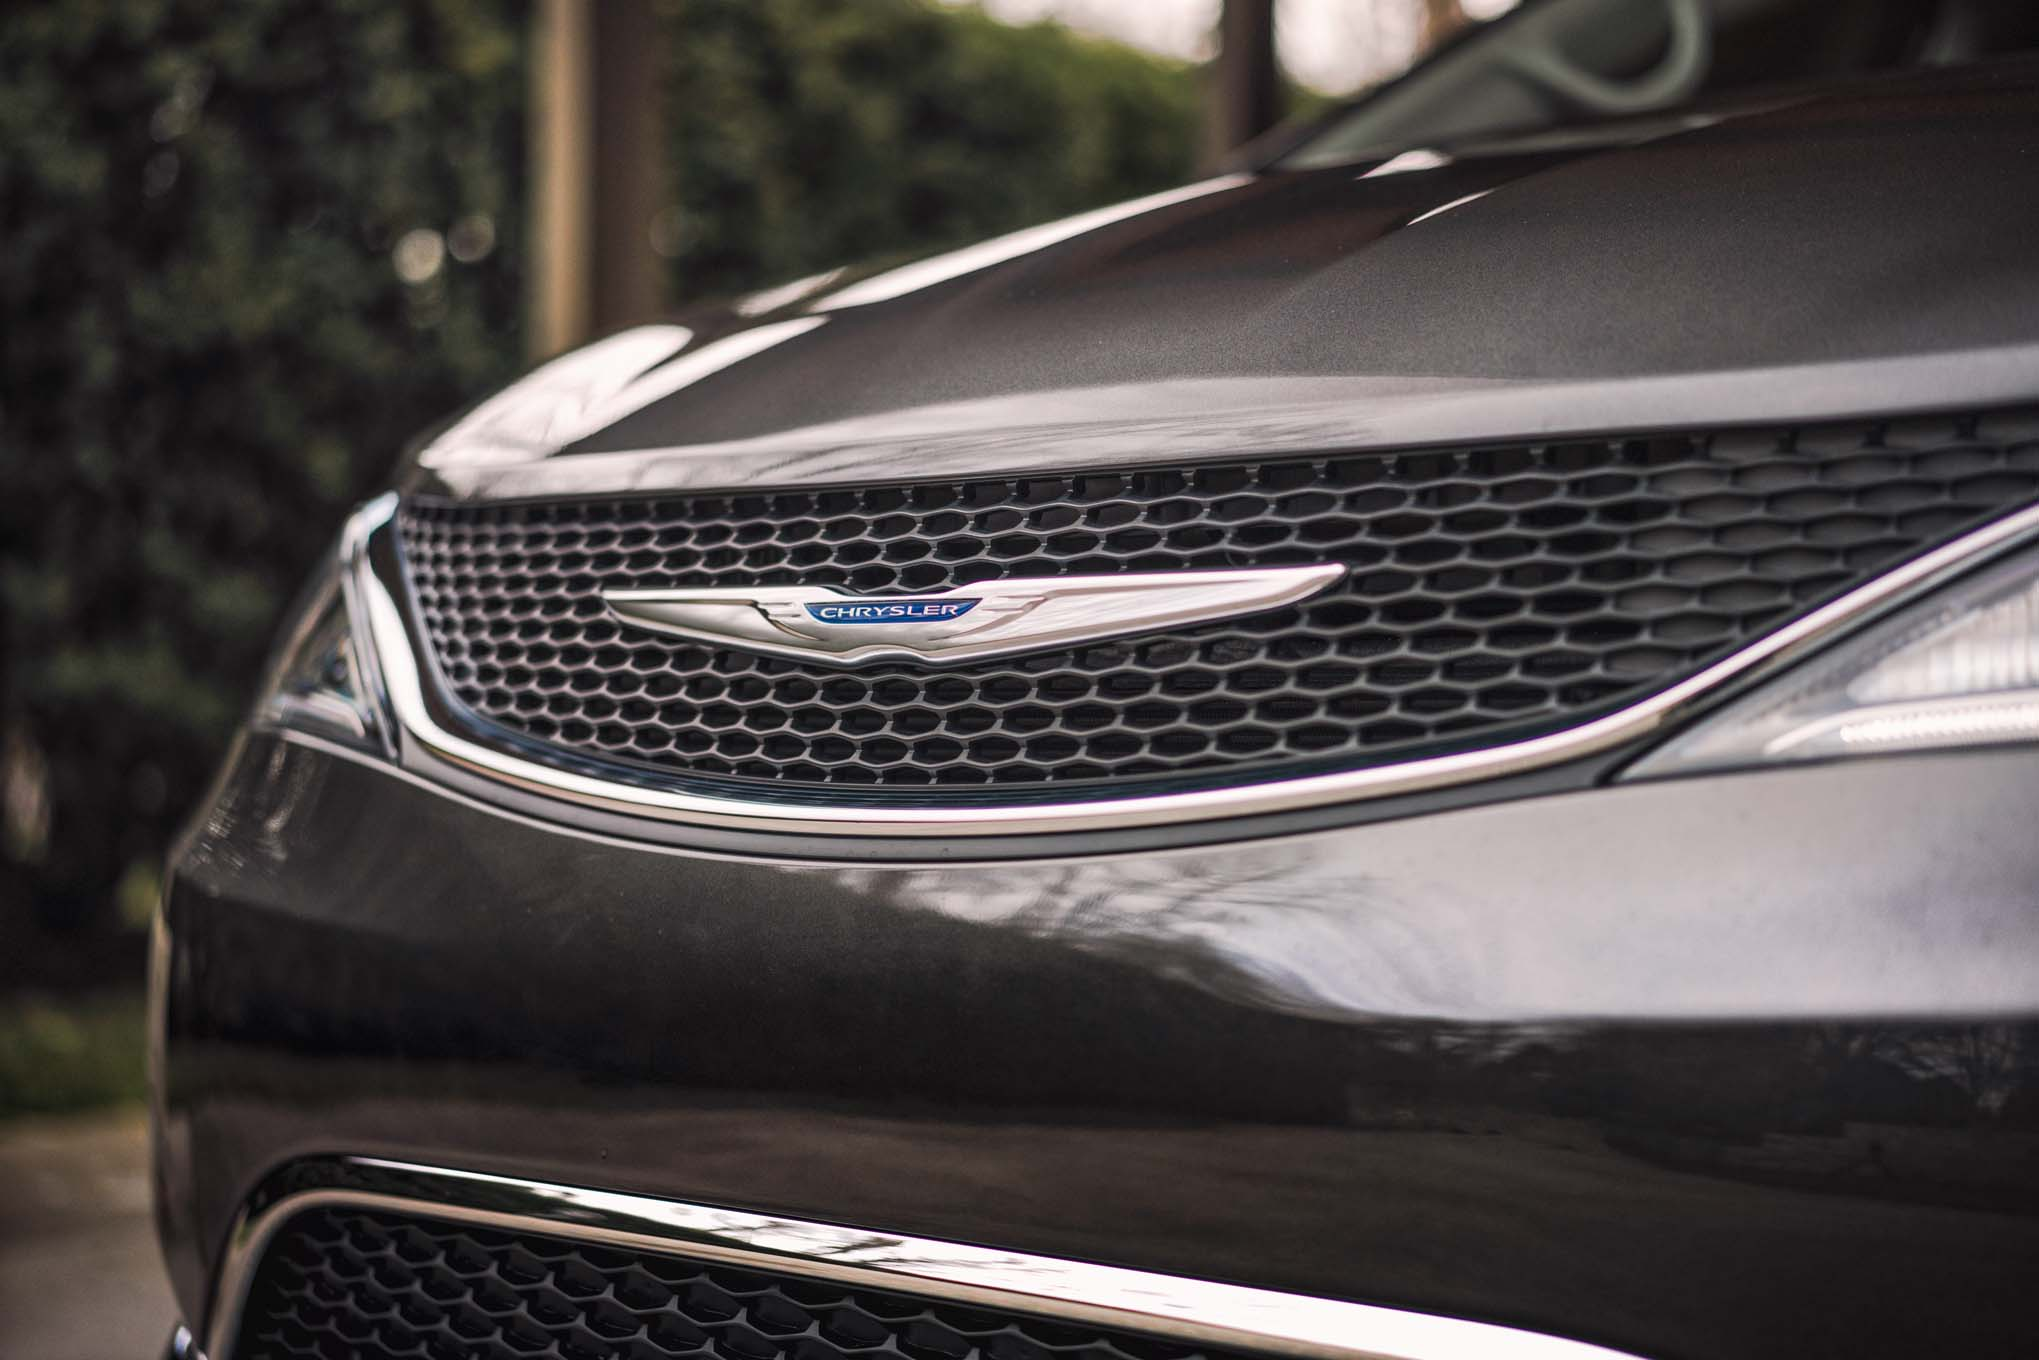 2017 Chrysler Pacifica Grille Badge